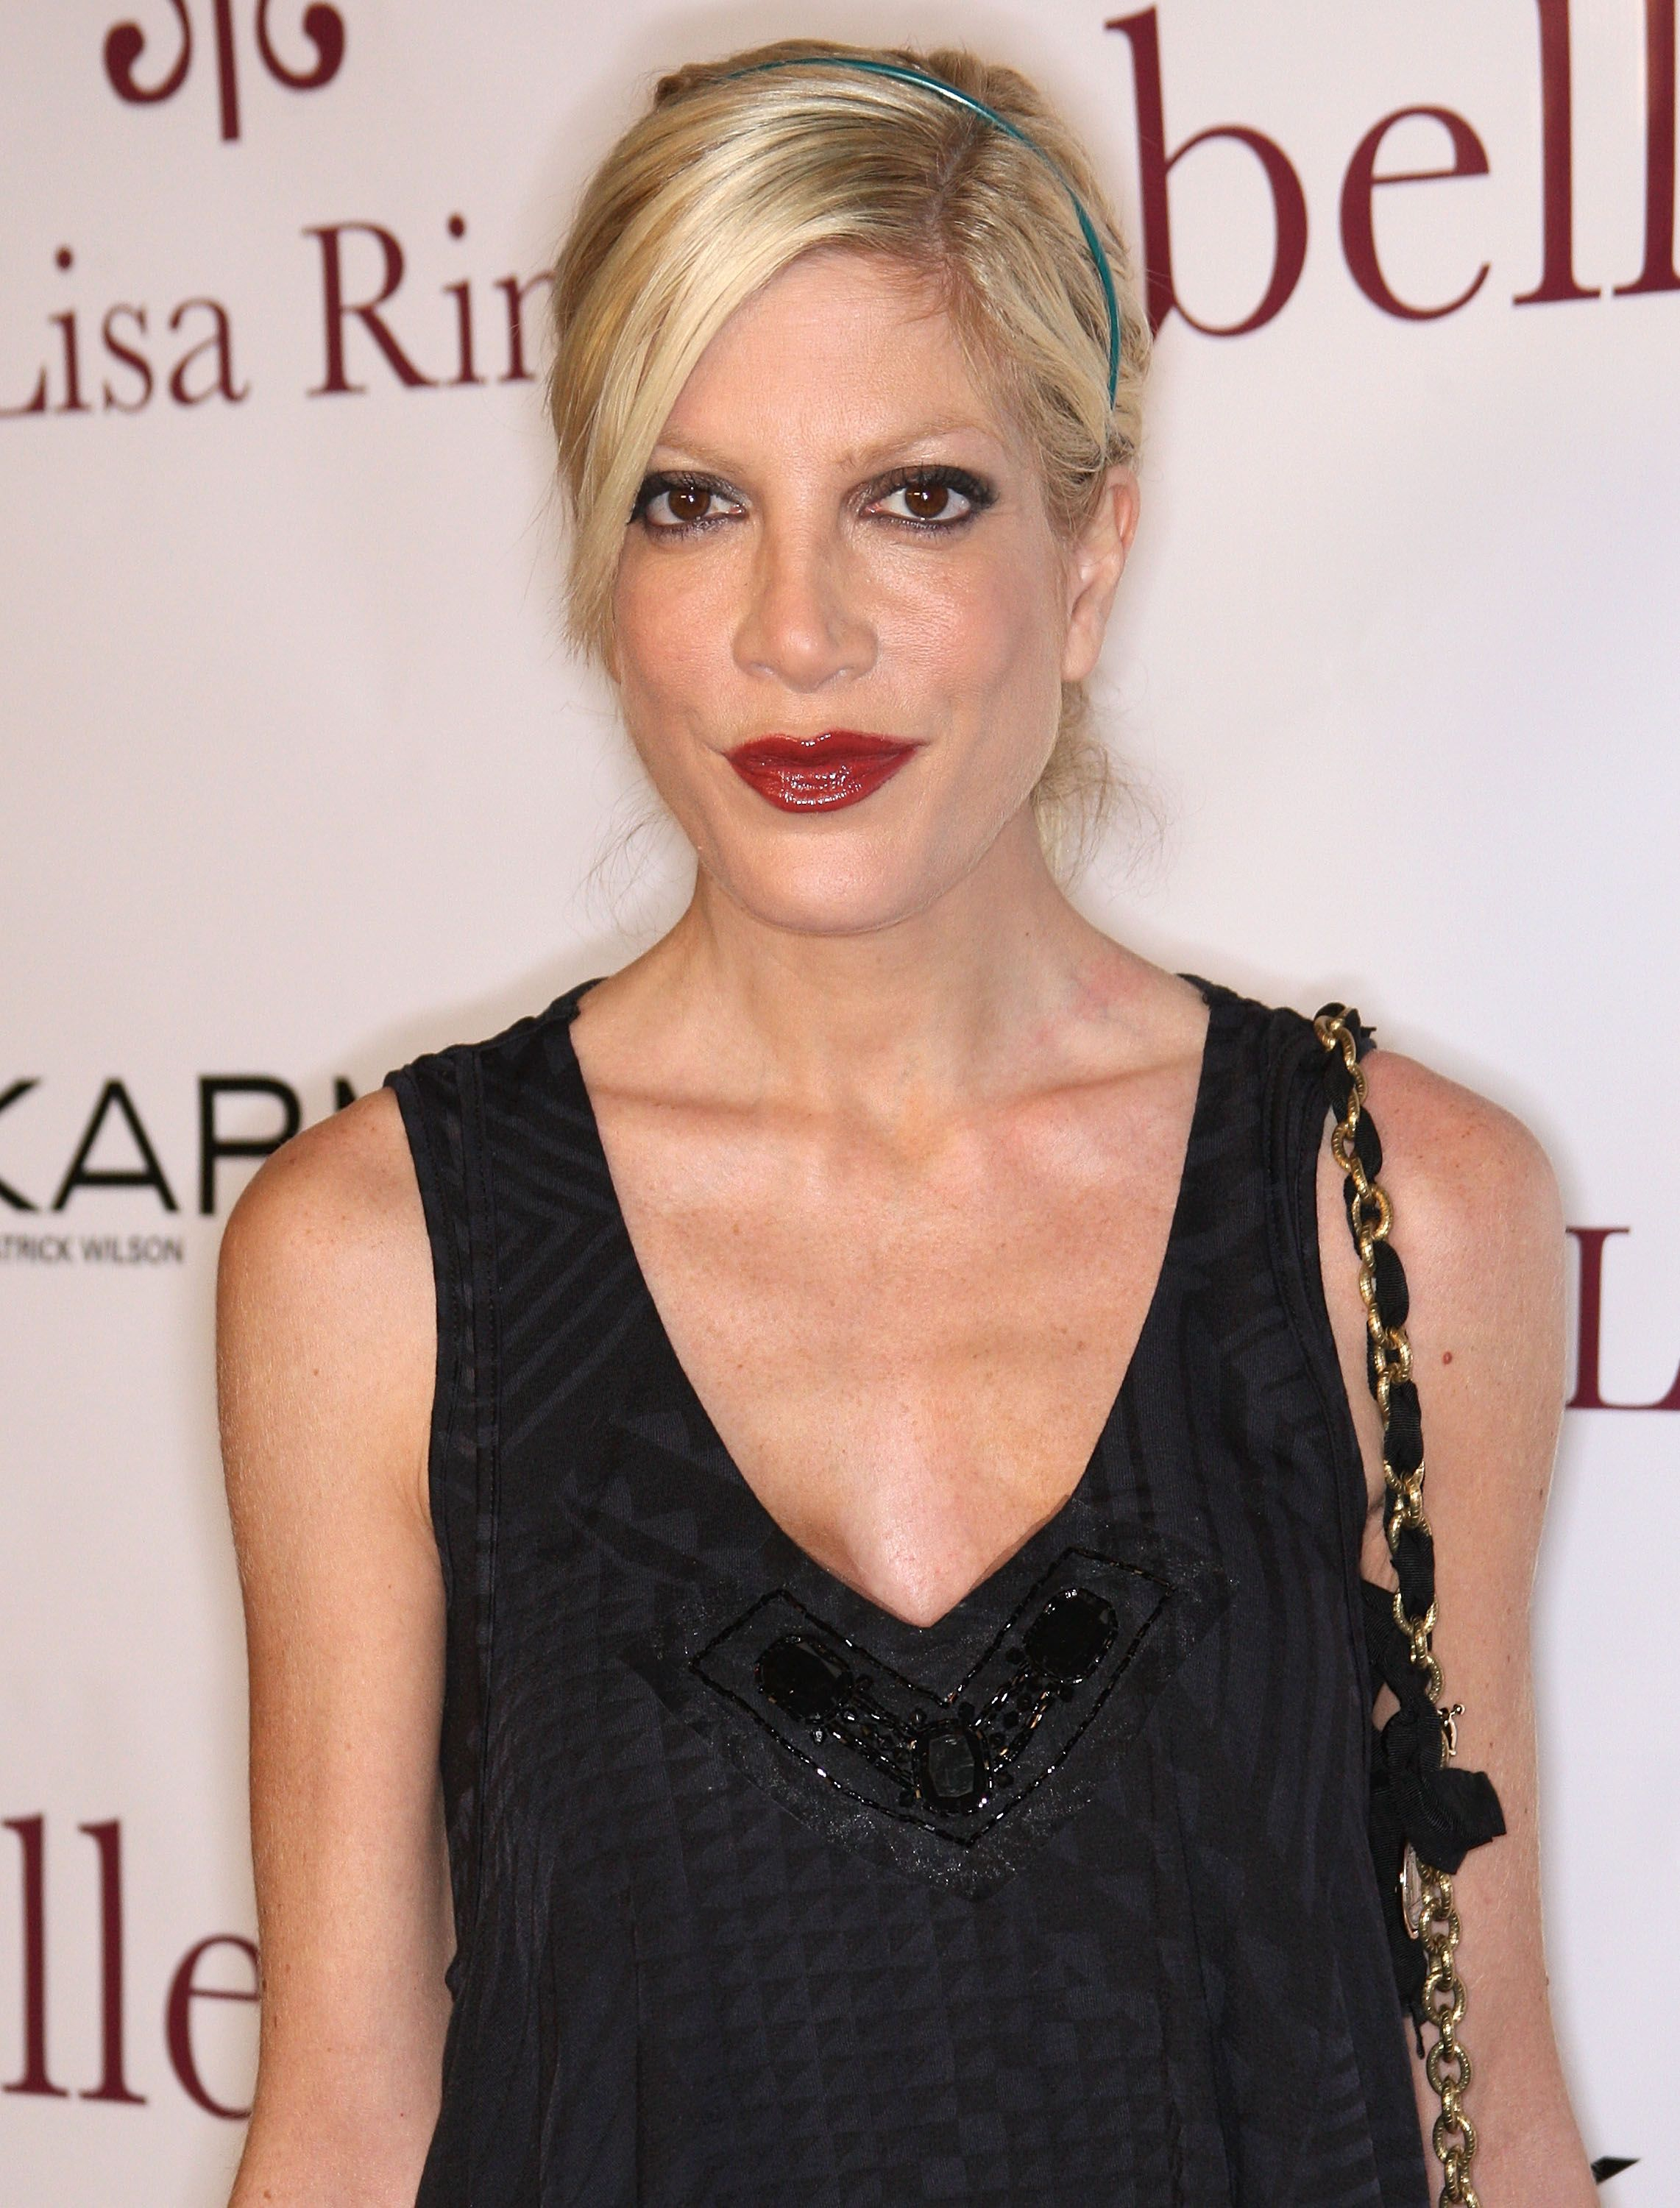 Actress Tori Spelling at the seventh anniversary of the Belle Gray Boutique on February 12, 2010 in Los Angeles, California | Photo: Getty Images